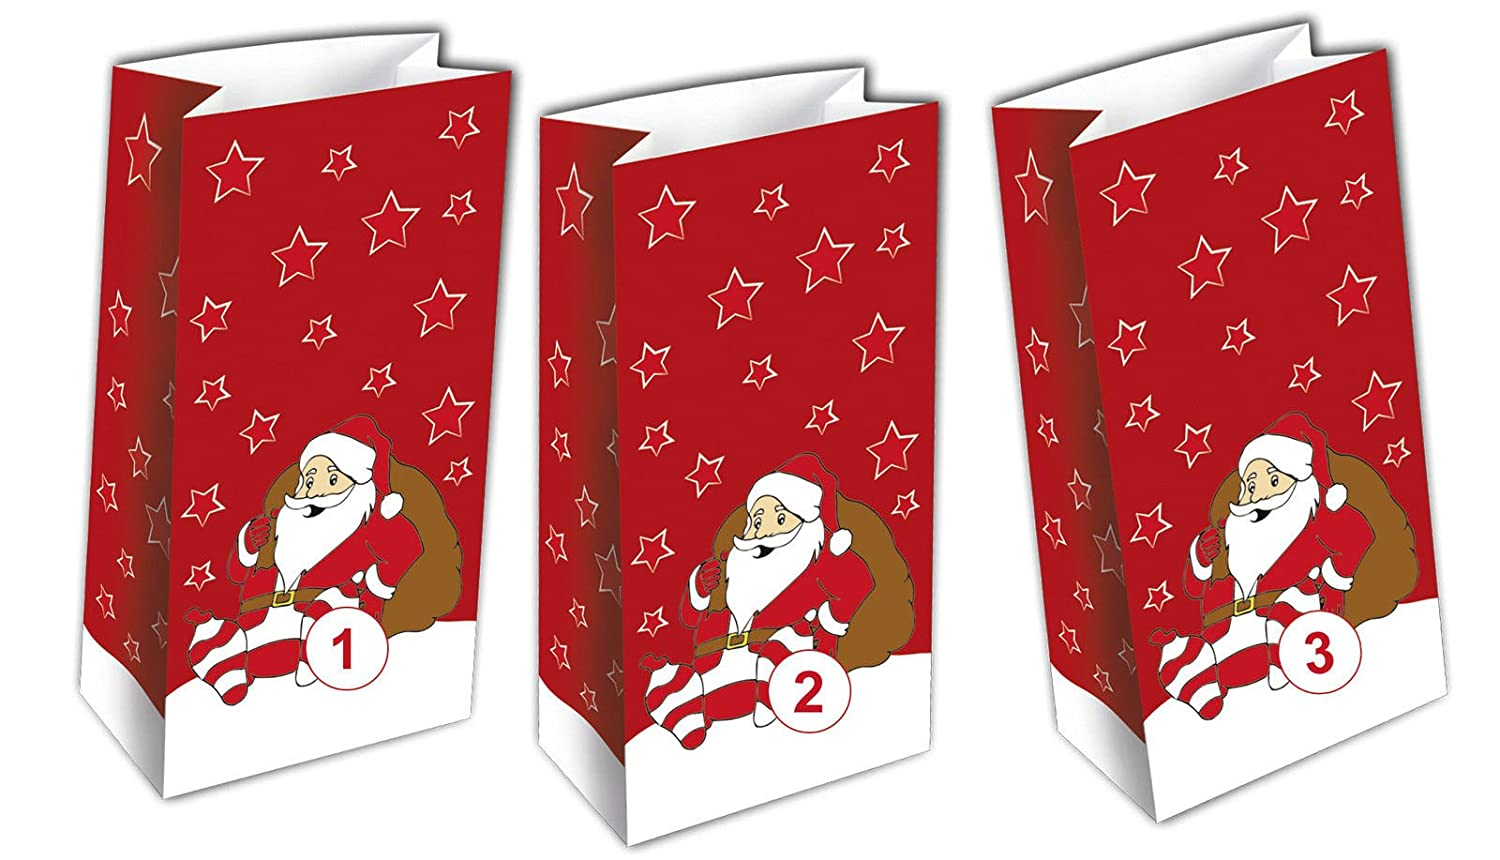 http://www.amazon.de/Adventskalender-10x6x20cm-Sticker-ArtNr-800098/dp/B00HRLJHHC/ref=sr_1_7?ie=UTF8&qid=1446915220&sr=8-7&keywords=adventskalender+t%C3%BCten